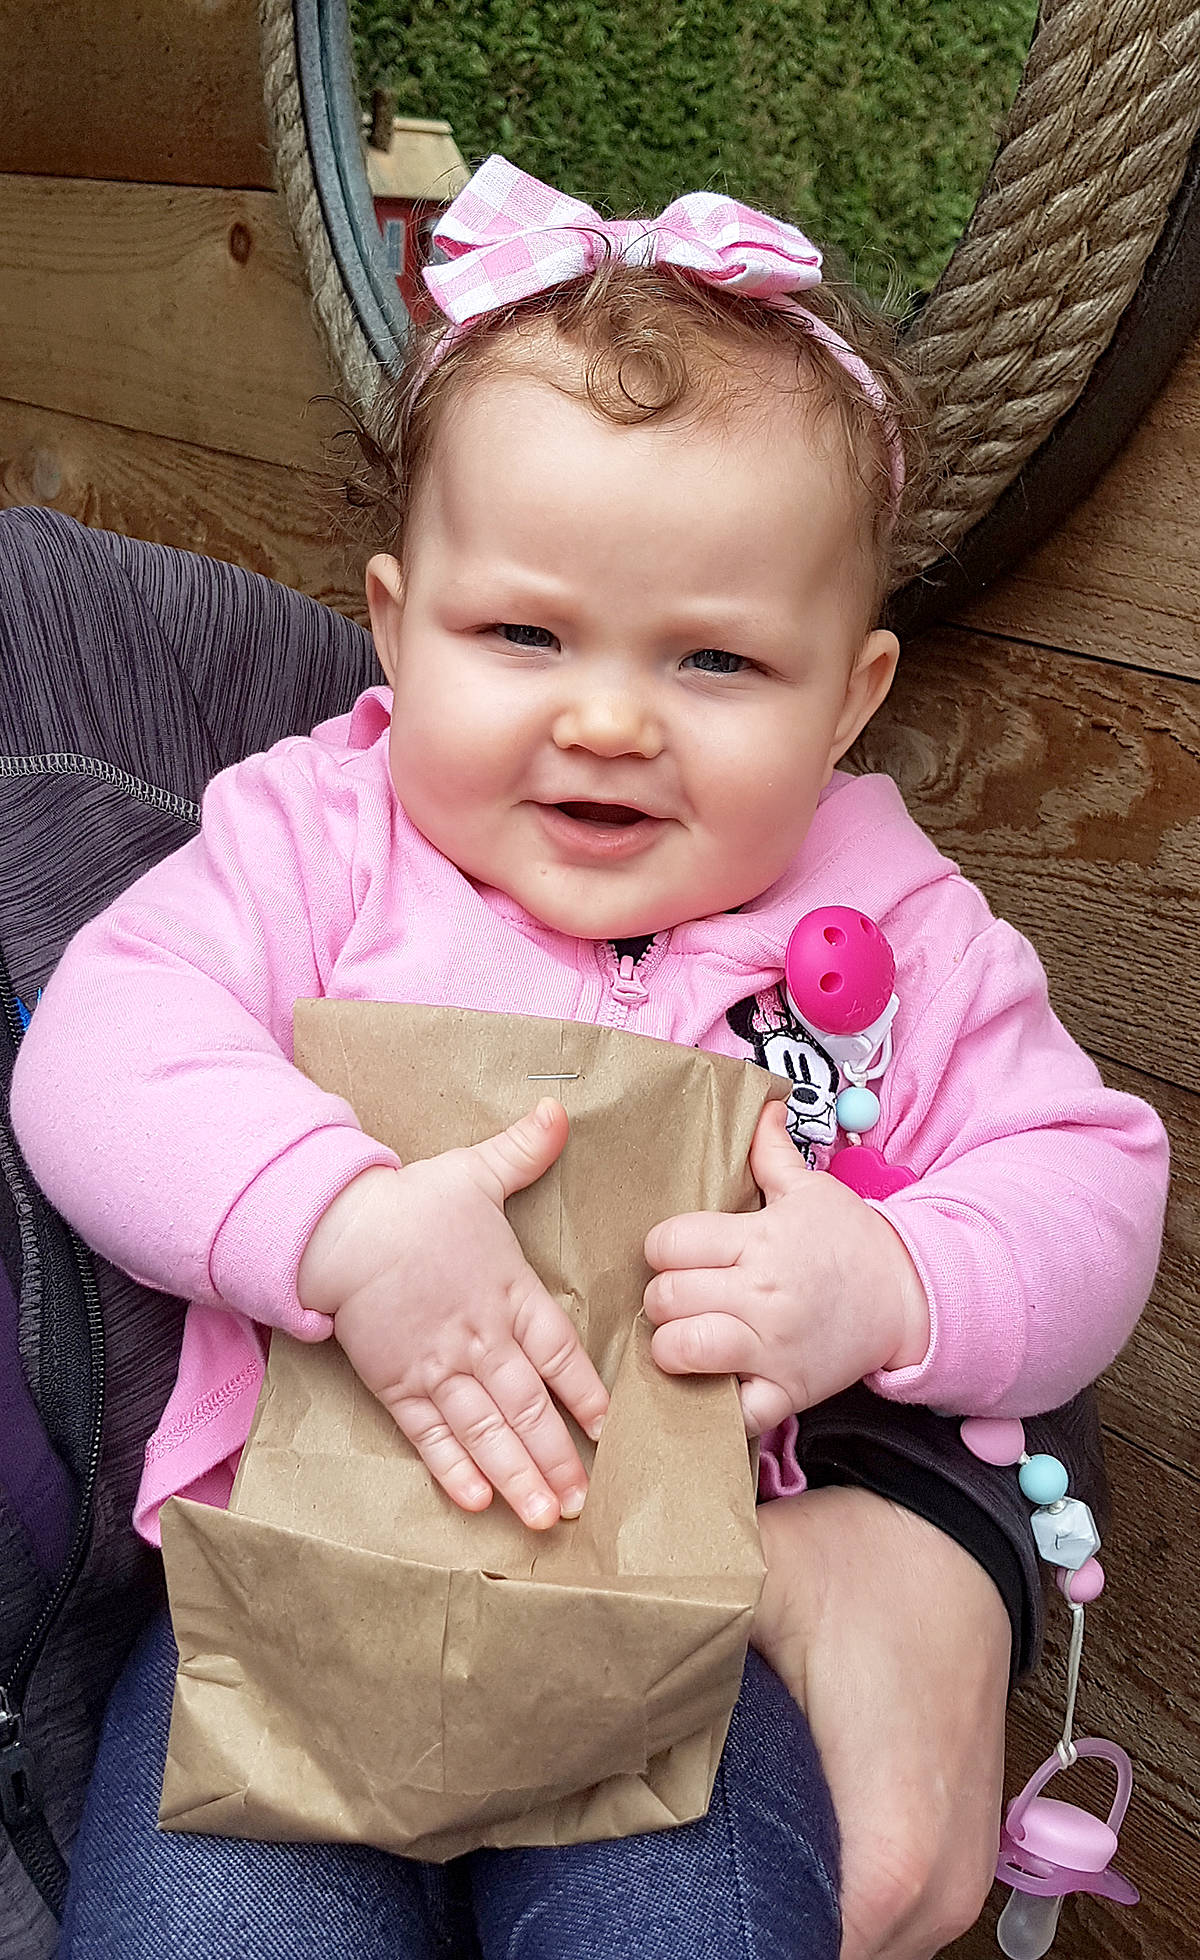 Young Emma, seven months old, held tight to her bag of lily bulbs picked out from Erikson's Daylily Gardens. (Pam Erikson/Special to Langley Advance Times)